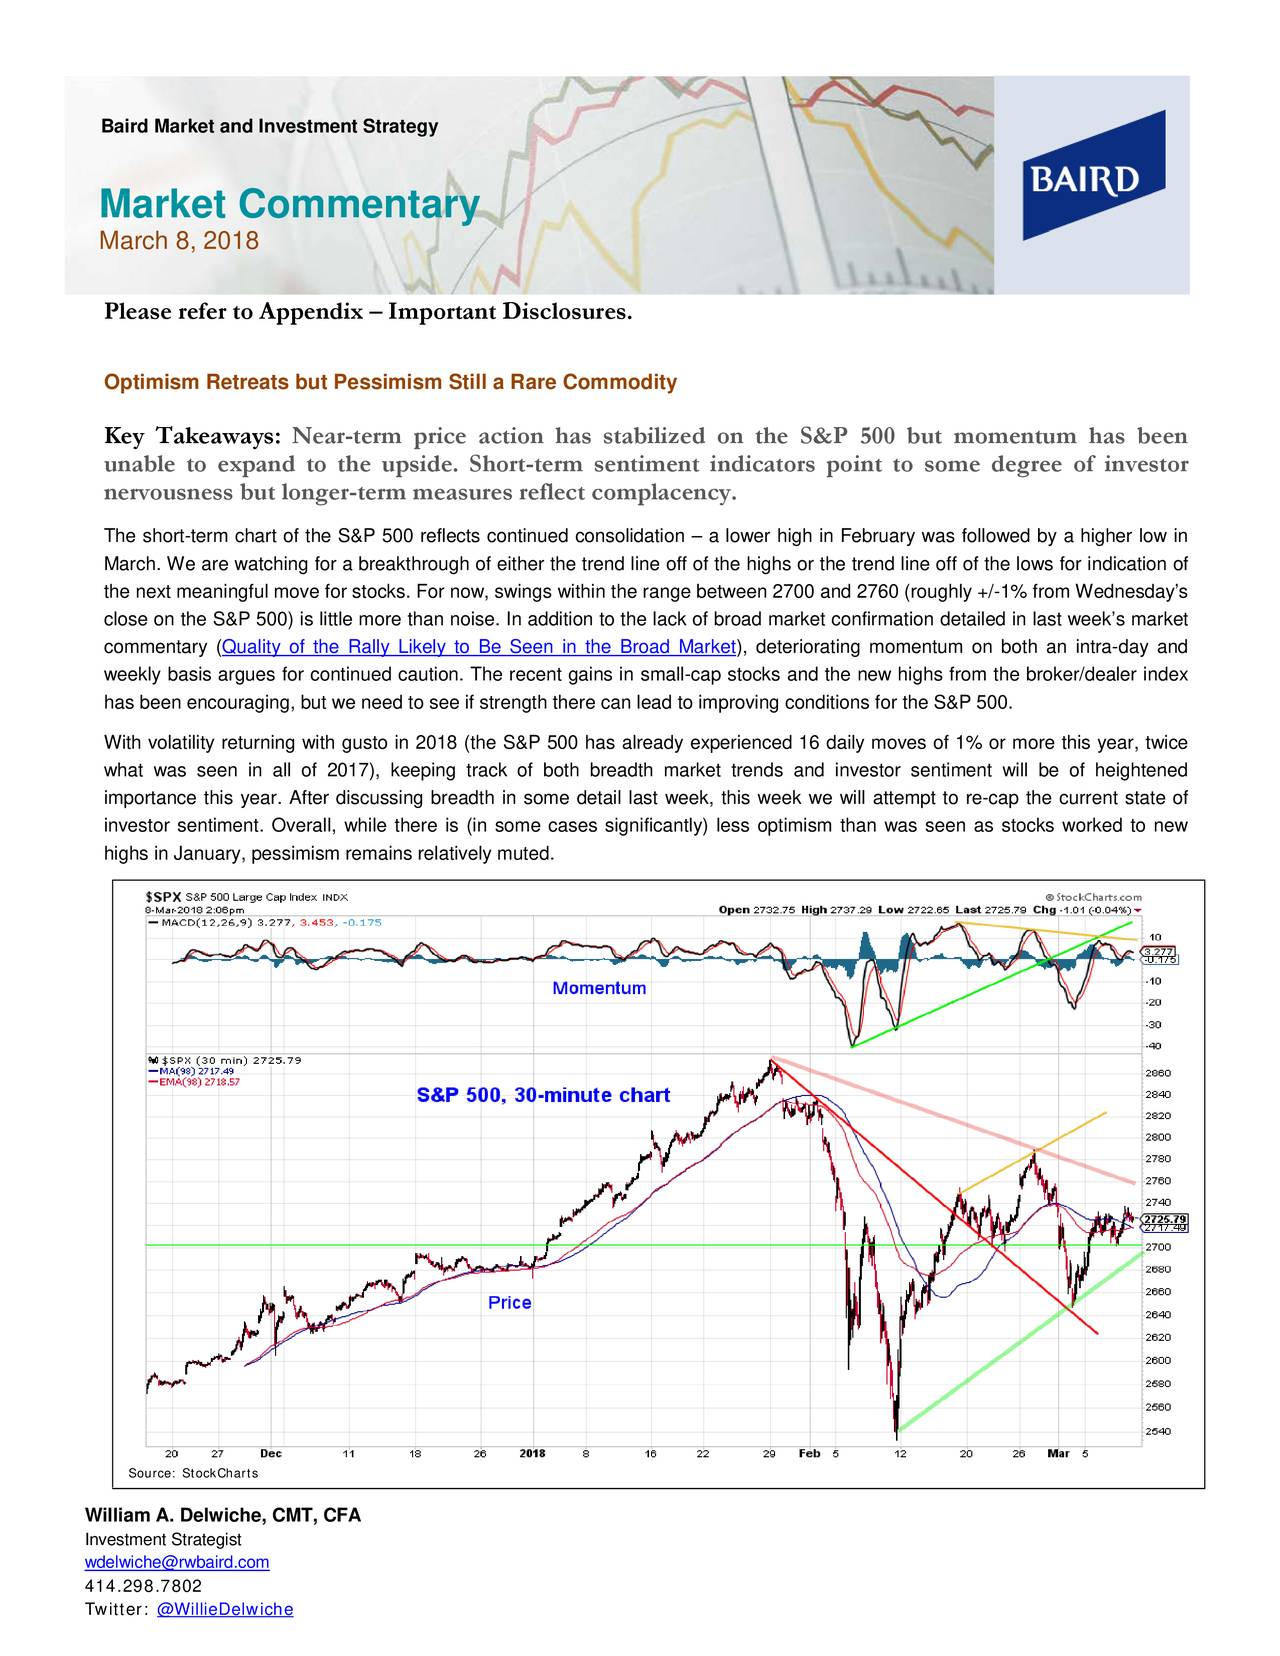 Market Commentary March 8, 2018 Please refer to Appendix – Important Disclosures. Optimism Retreats but Pessimism Still a Rare Commodity Key Takeaways : Near-term price action has stabilized on the S&P 500 but momentum has been unable to expand to the upside. Short -term sentiment indicators point to some degree of investor nervousness but longer-term measures reflect complacency. The short-term chart of the S&P 500 reflects continued consolidation – a lower high in February was followed by a higher low in March. We are watching for a break through of either the trend line off of the highs or the trend line off of the lows for indication of the next meaningful move for stocks. For now, swings within the range between 2700 and 2760 (roughly +/ -1% from Wednesday's close on the S&P 500) is little more than noise. In addition to the lack of broad market condetailed in last week's market commentary (Quality of the Rally Likely to Be Seen in the Broad Market), deteriorating momentum on both an intra-day and weekly basis argues for continued caution. The recent gains in small-cap stocks and the new highs from the broker/dealer index has been encouraging, but we need to see if strength there can lead to improving conditions for the S&P 500. With volatility returning with gusto in 2018 (the S&P 500 ha s already experienced 16 daily moves of 1% or more this year, twice what was seen in all of 2017), keeping track of both breadth market trends and investor sentiment will be of heightened importance this year. After discussing breadth in some detail leek, this week we will attempt to re-cap the current state of investor sentiment. Overall, while there is (in some cases significantly) less optimism than was seen as stocks worked to new highs in January, pessimism remains relatively muted. Source: StockCharts William A. Delwiche, CMT, CFA Investment Strategist wdelwiche@rwbaird.com 414.298.7802 Twitter: @WillieDelwiche